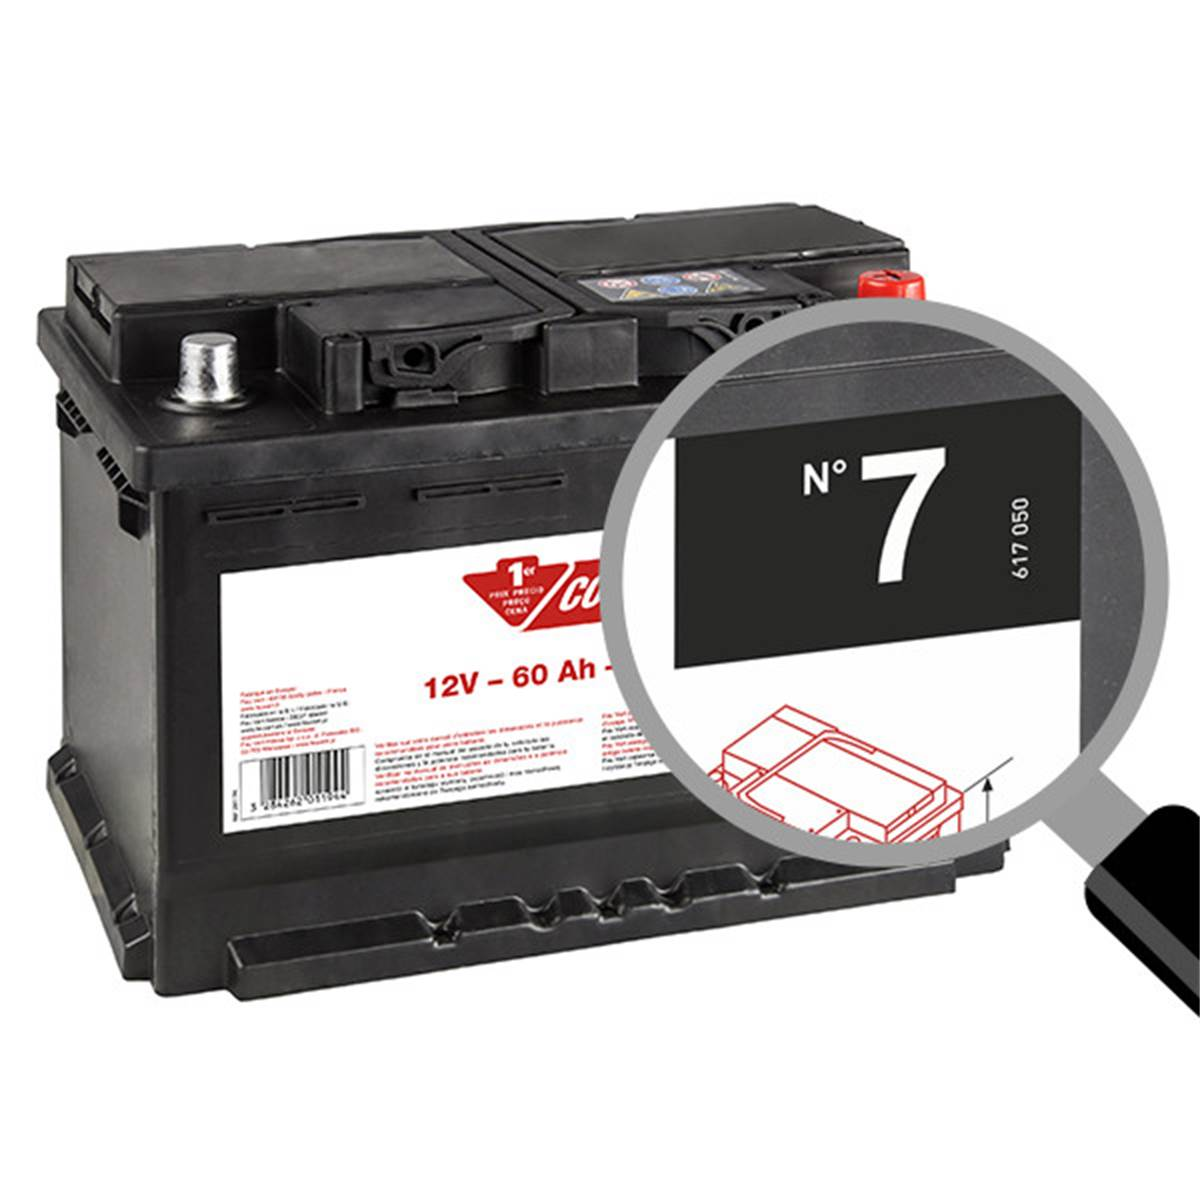 Batterie voiture Contact n°7 - 56Ah / 480A - 12V